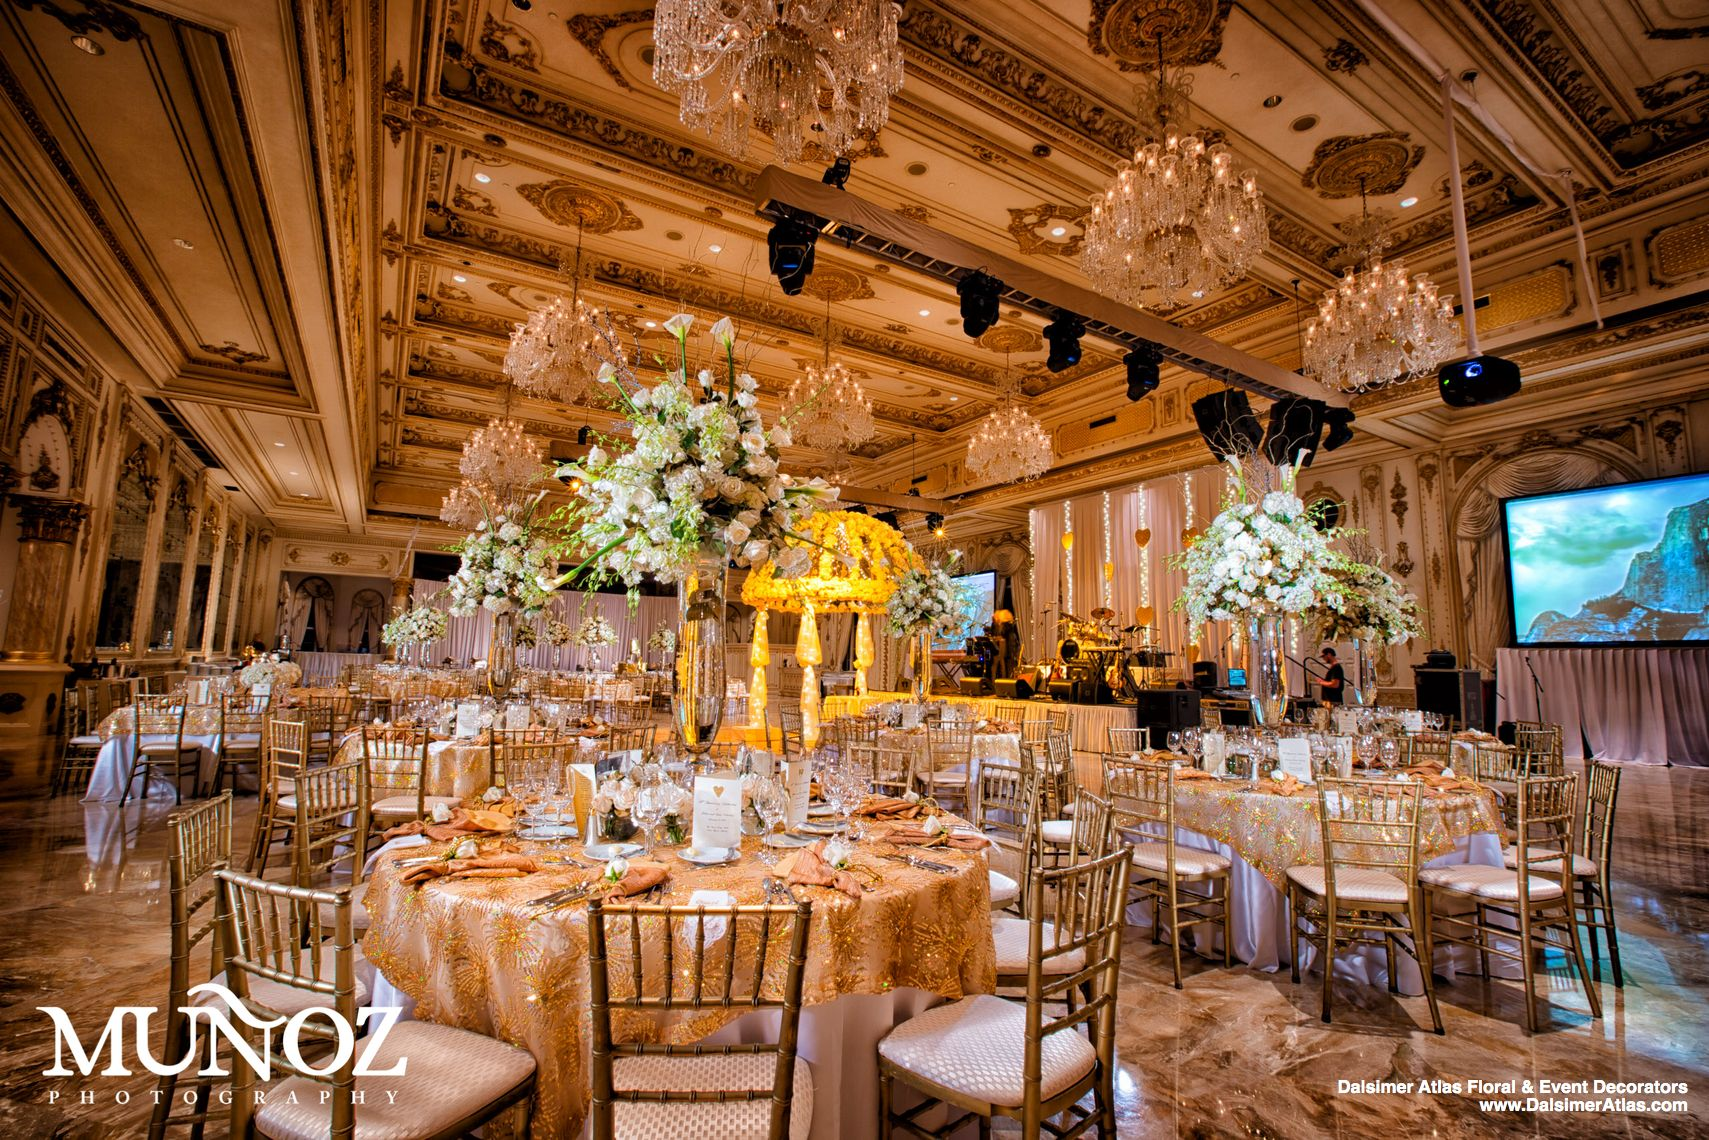 wedding-florist-flowers-decorations-50th-anniversary-party-mar-a-lago-club-palm-beach-florida-dalsimer-atlas-21